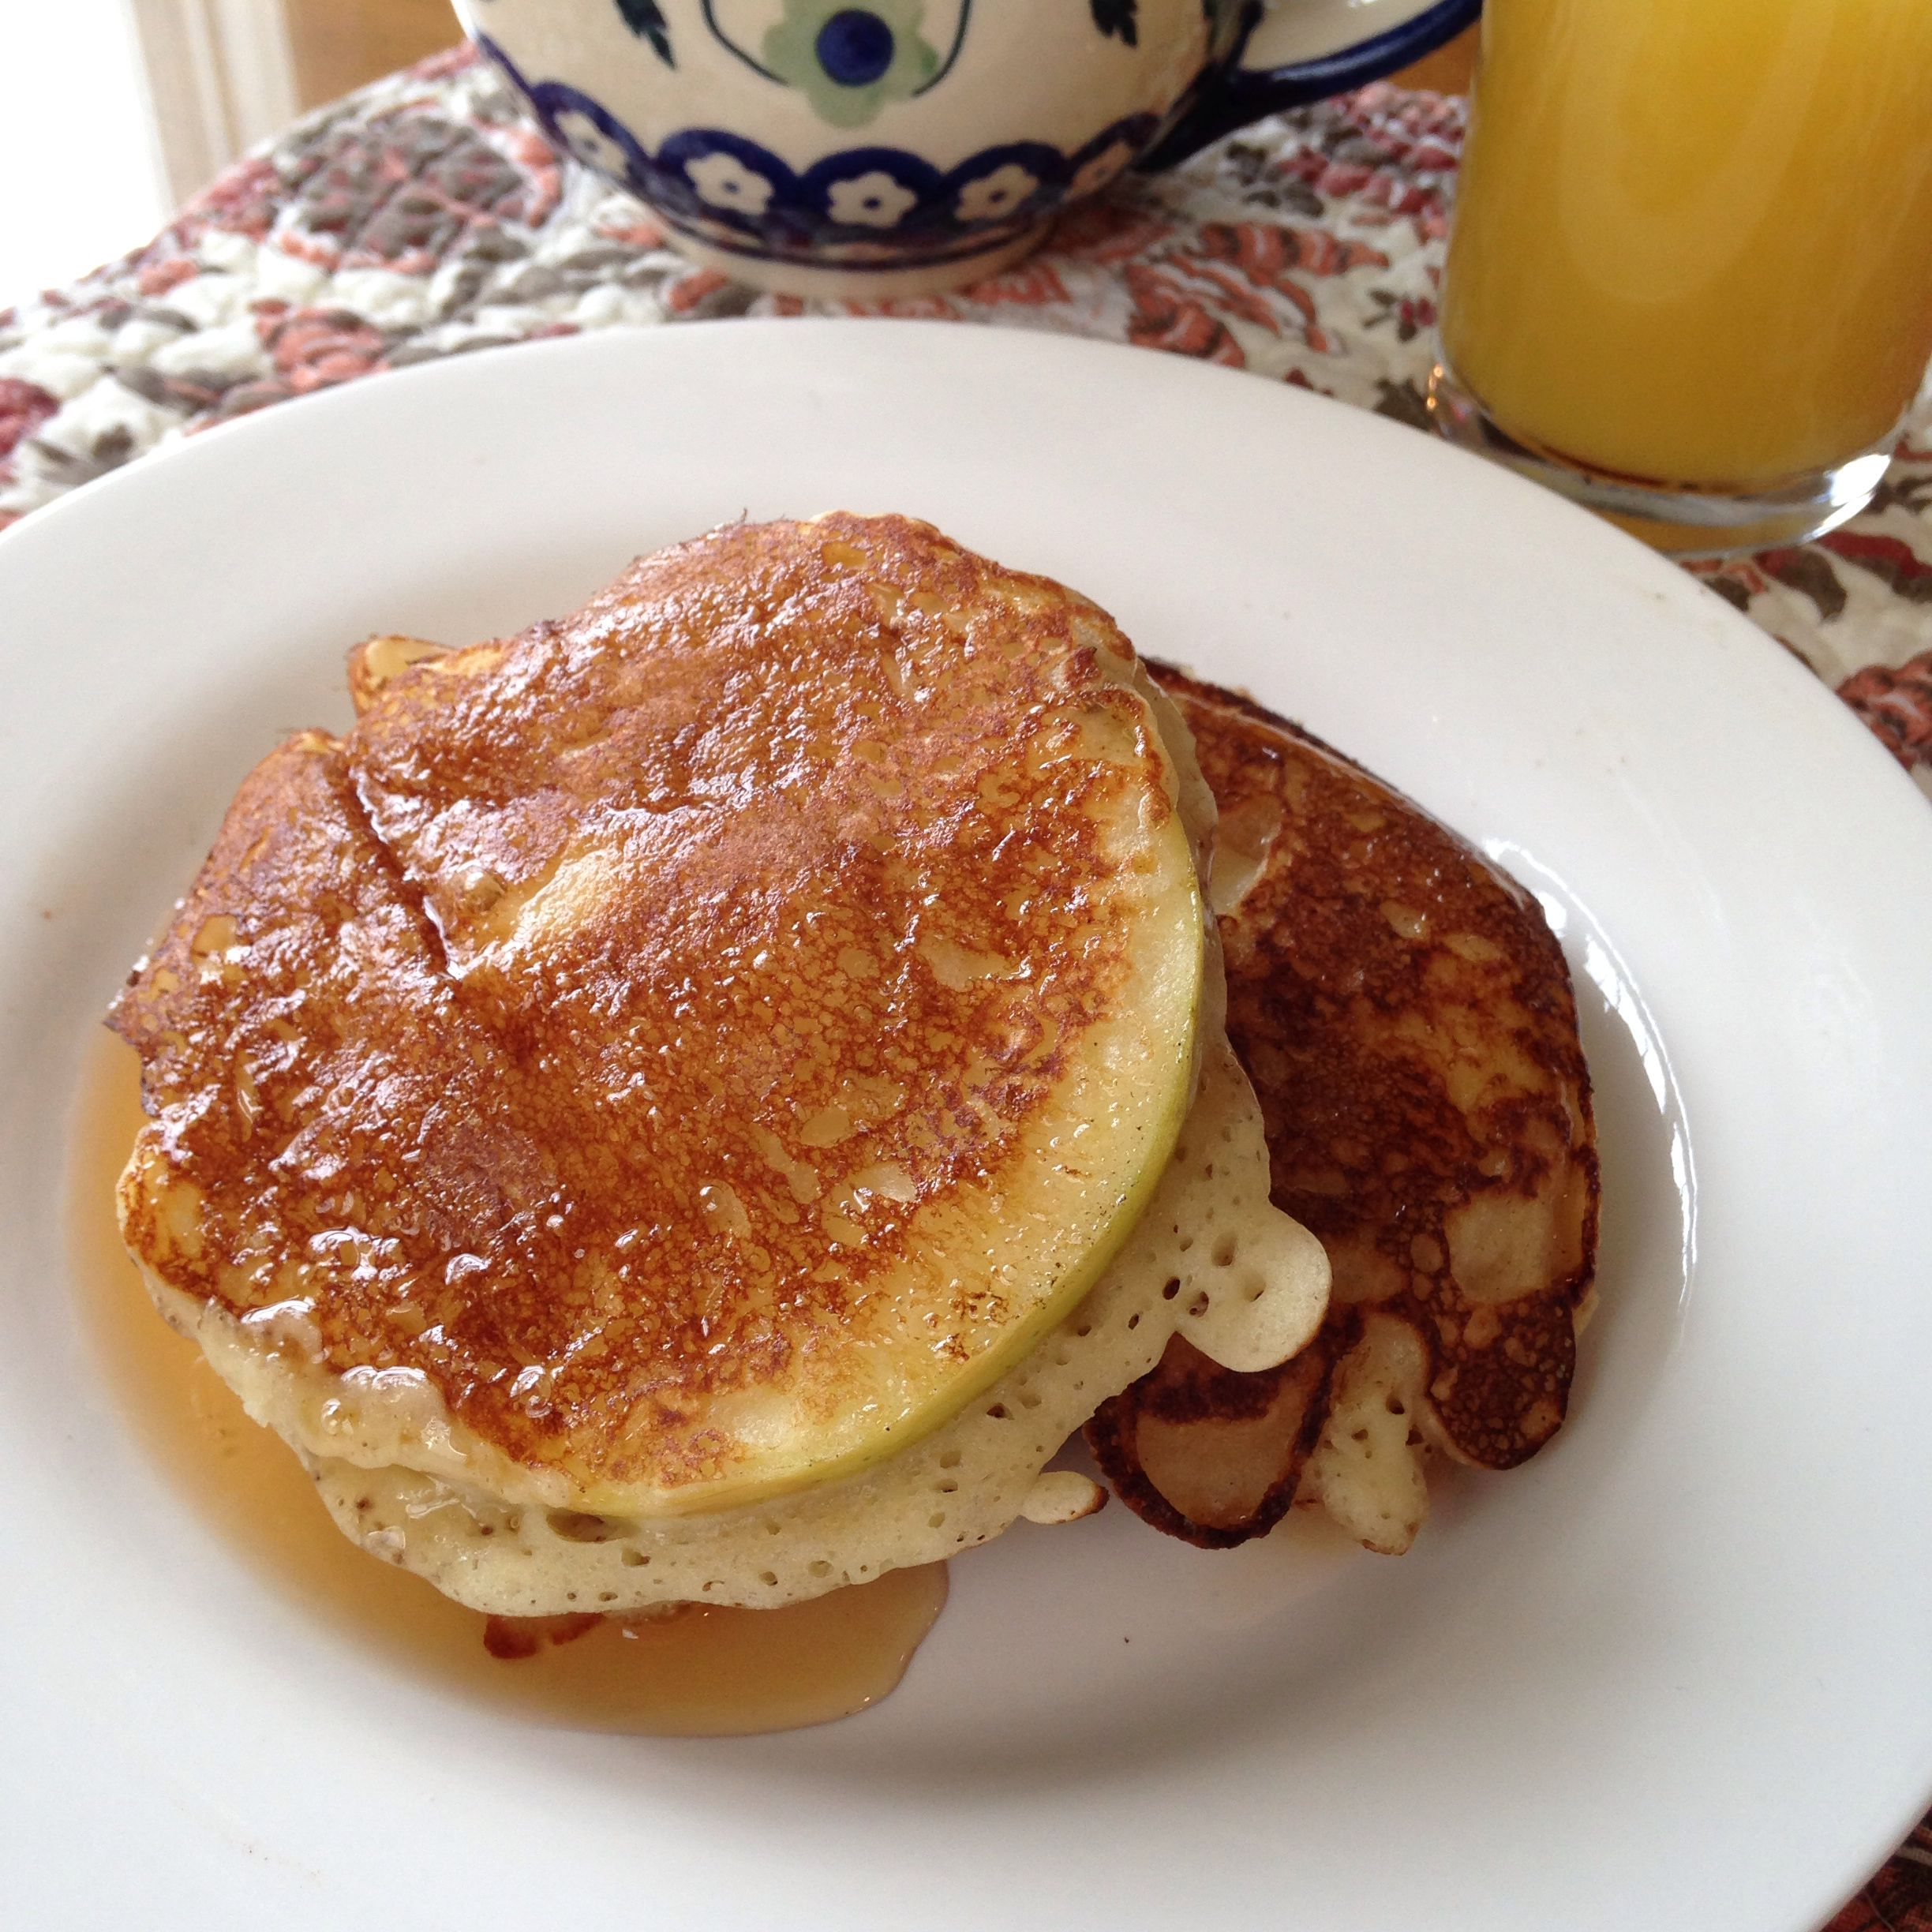 #Banapple Buttermilk Pancakes at my friend's B&B, a perfect beginning for Sunday morning! Thanks Amiga!